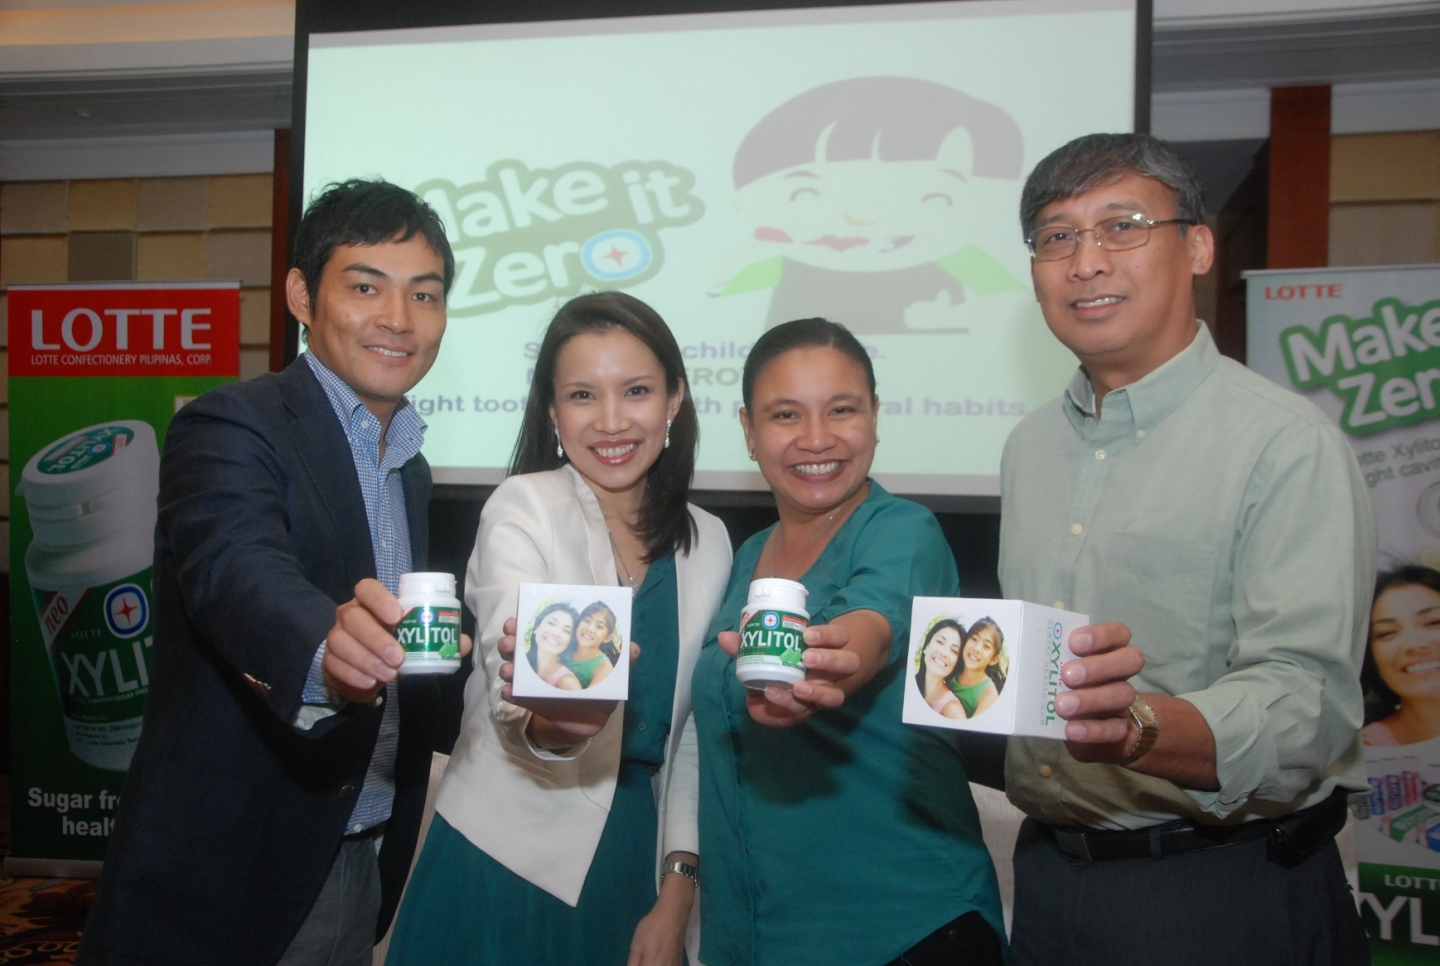 Lotte Xylitol Aims for Zero Cavities. Photo shows Soi Kitaguchi GM of Lotte Confectionery Pilipinas Corp, Dr. Fina Lopez, Therese Reyes of Lotte and Dr. Angelo Fernandez.